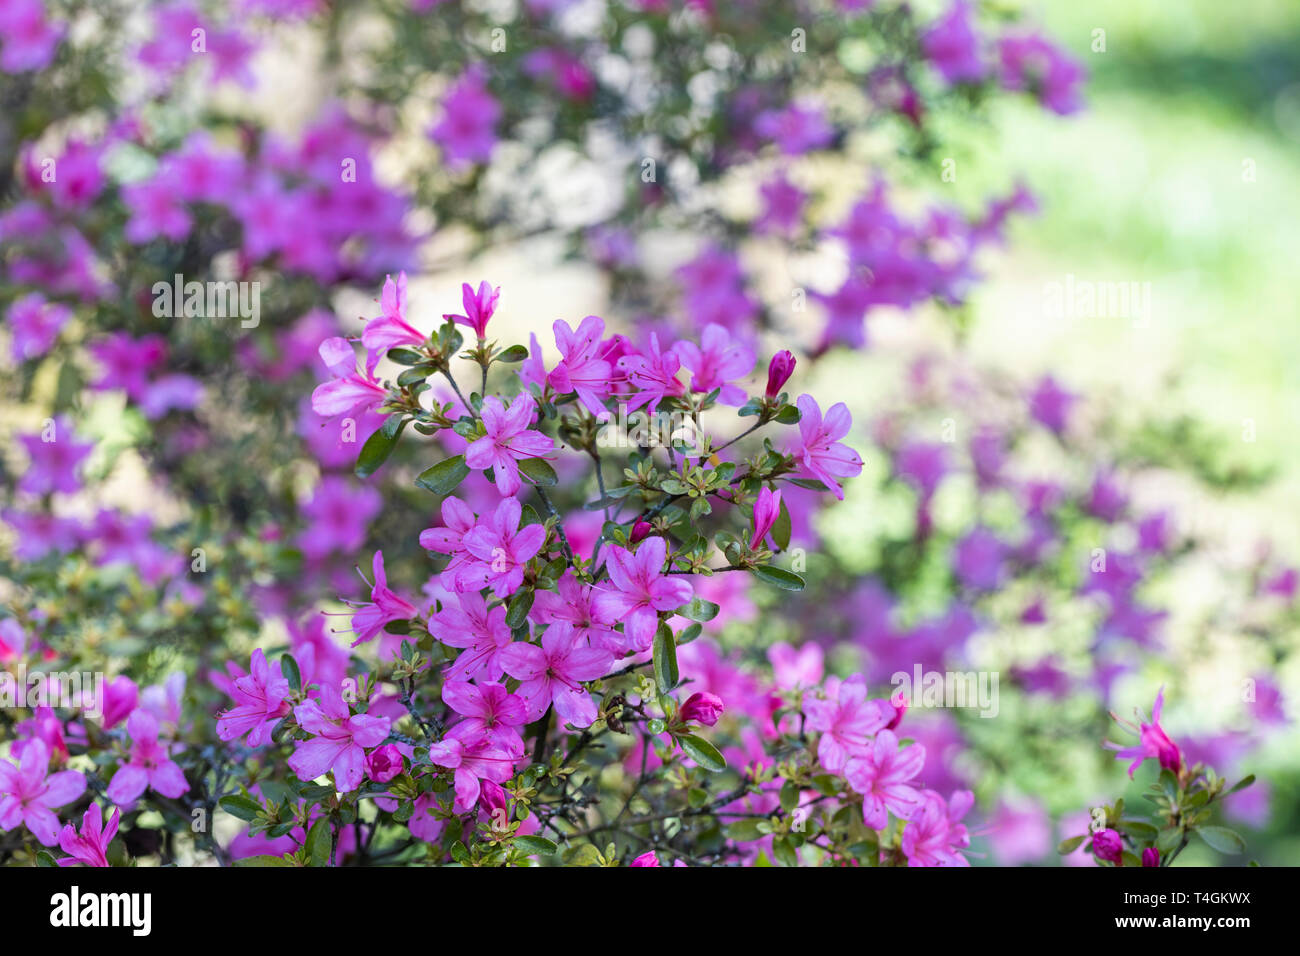 Close up of Rhododendron Hinomayo - pink Azalea flowering in an English garden Stock Photo